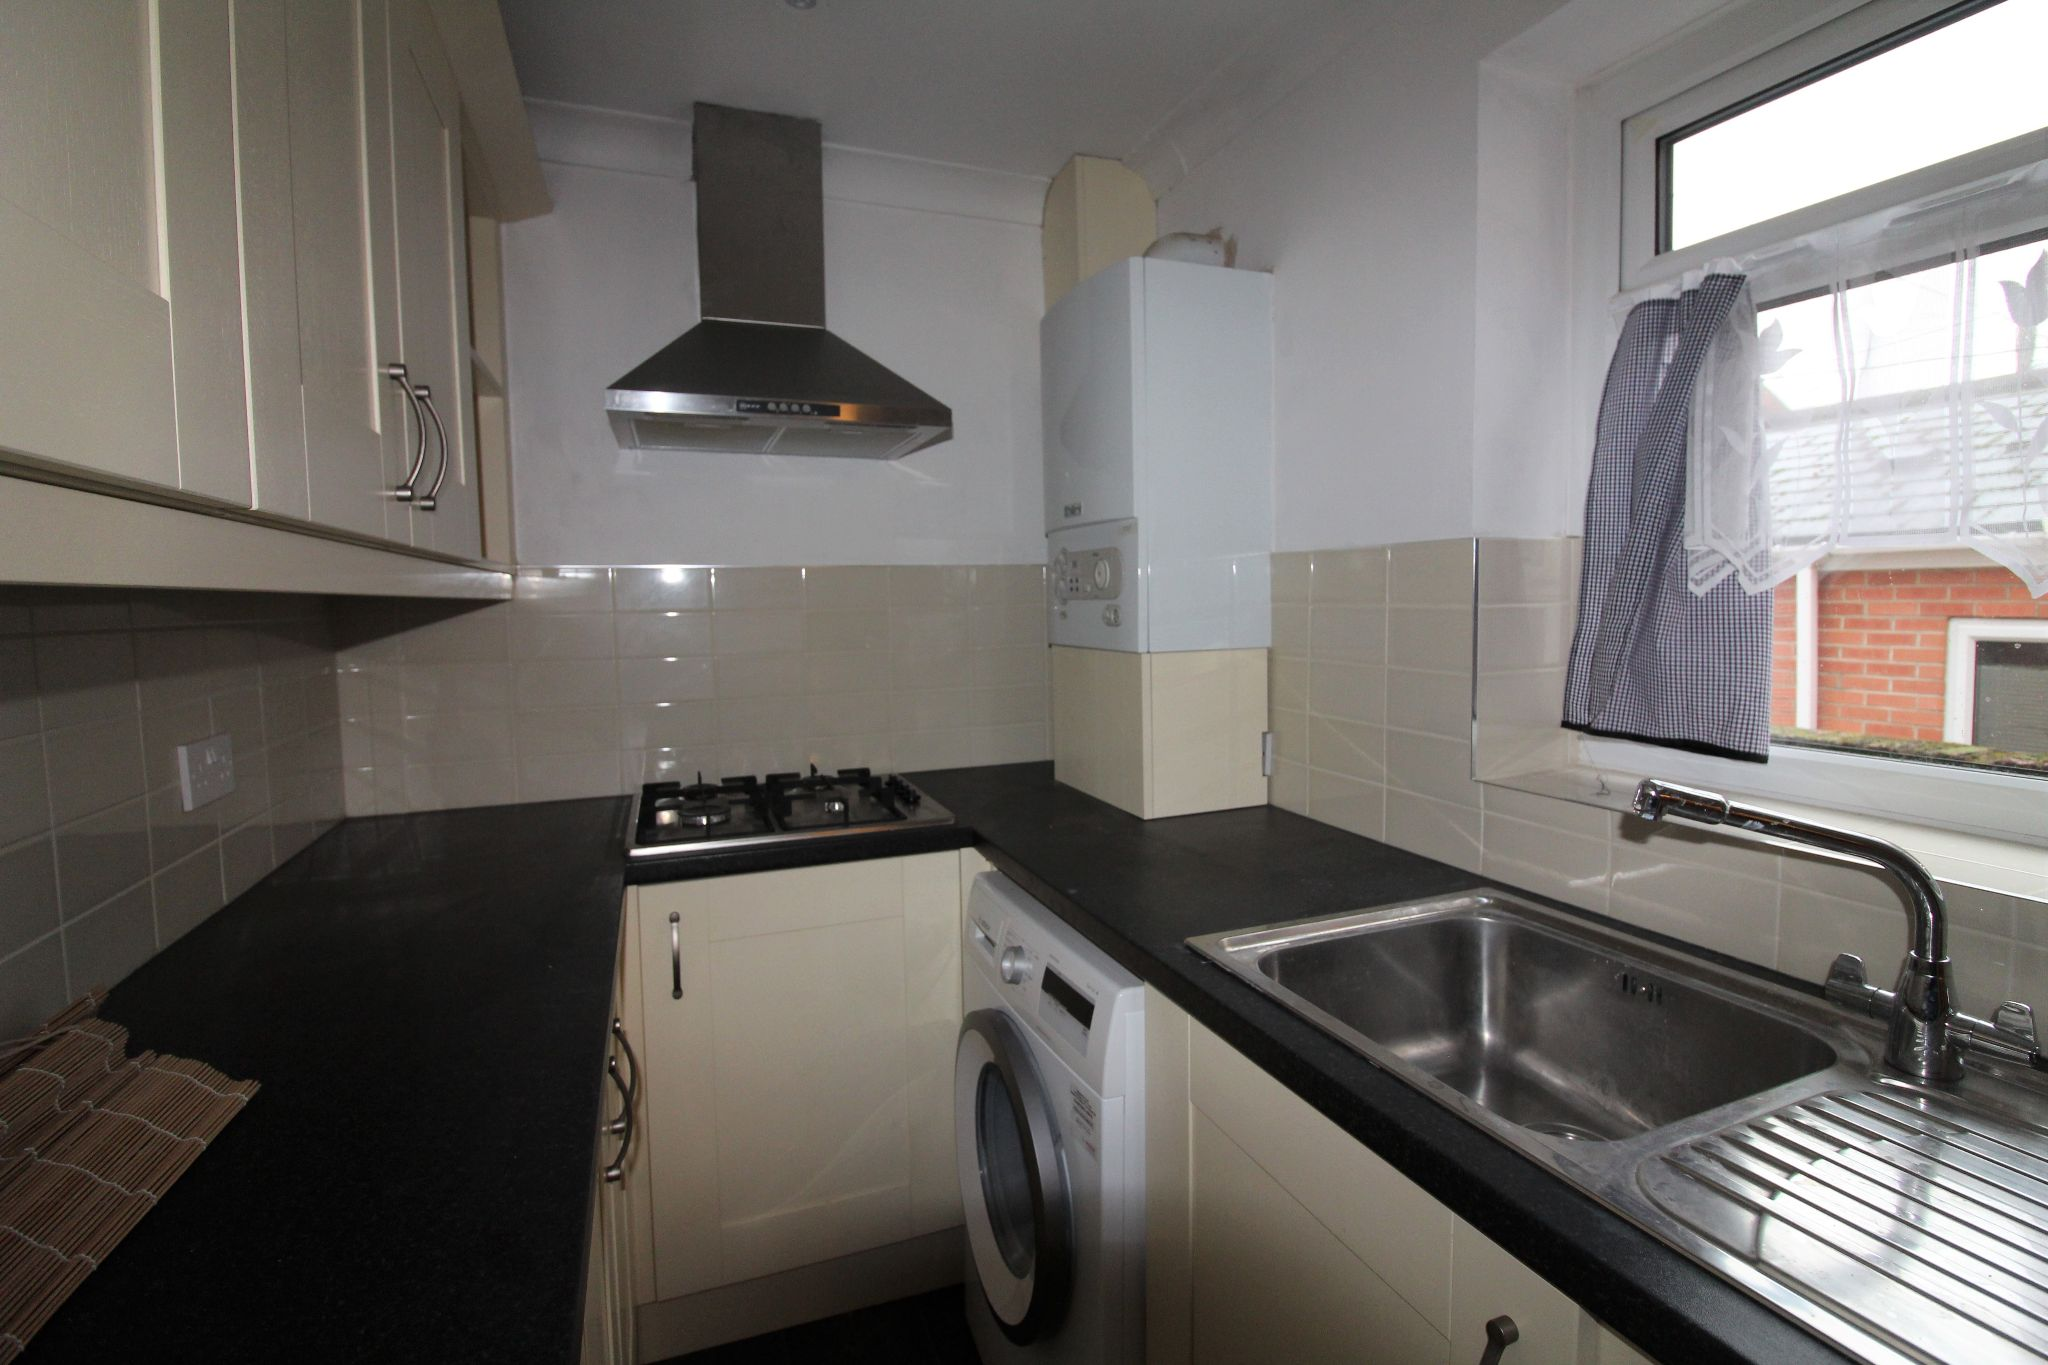 2 bedroom mid terraced house Let in Bishop Auckland - Photograph 13.